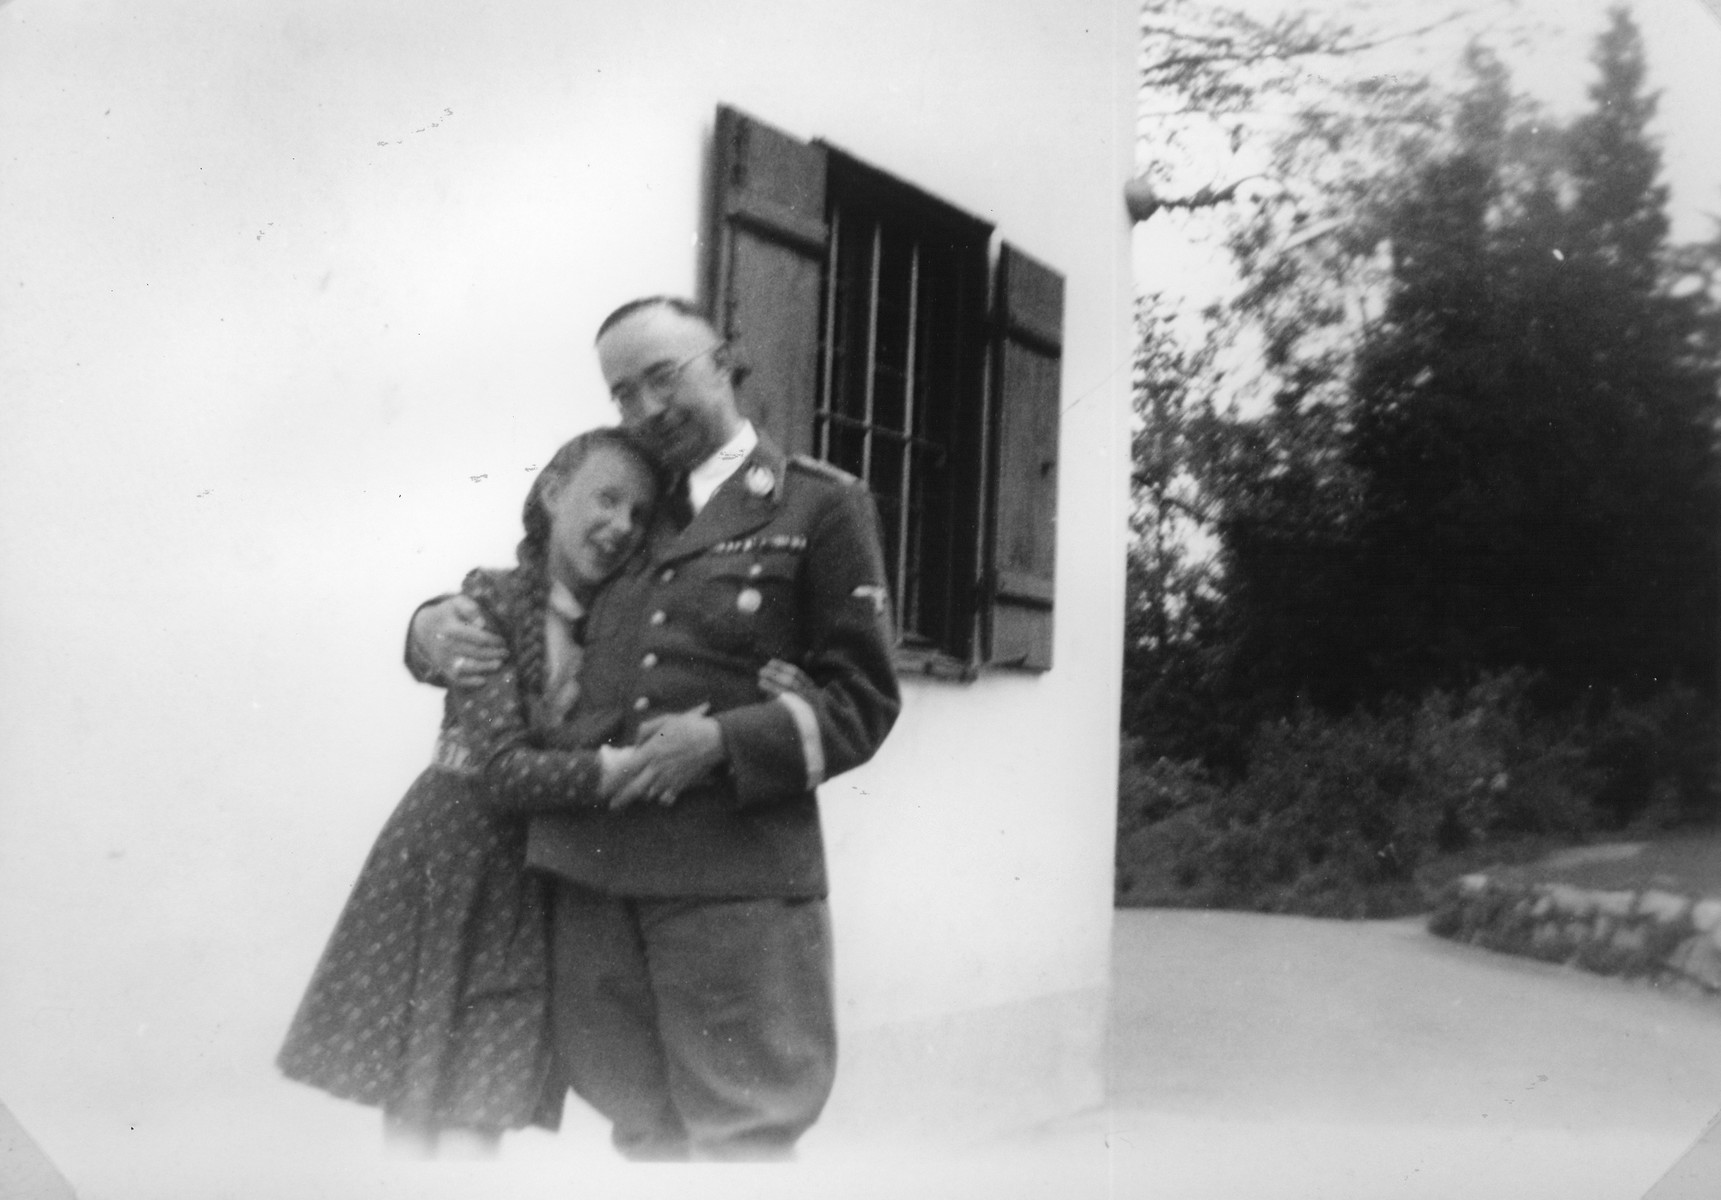 Reichsfuehrer-SS Heinrich Himmler embraces his daughter Gudrun [probably outside their home in Gmund am Tagernsee].